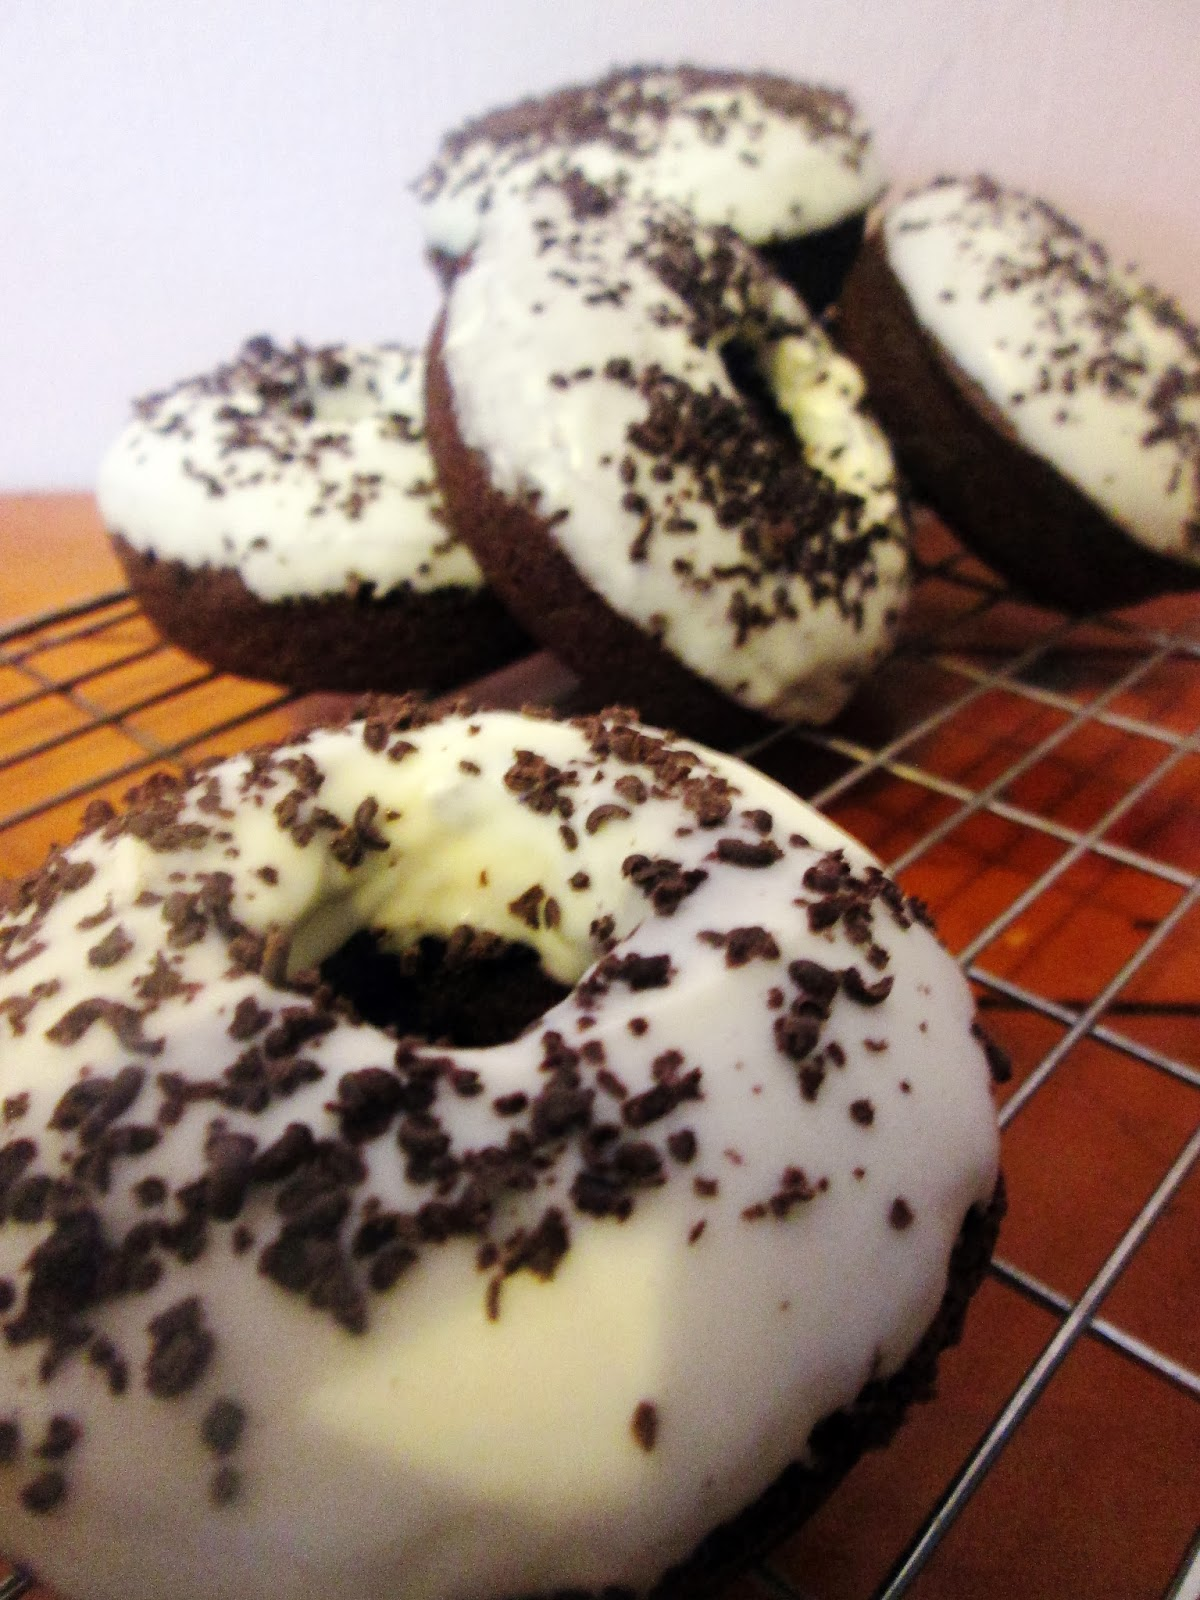 http://themessykitchenuk.blogspot.co.uk/2014/01/chocolate-baked-doughnuts-with-white.html